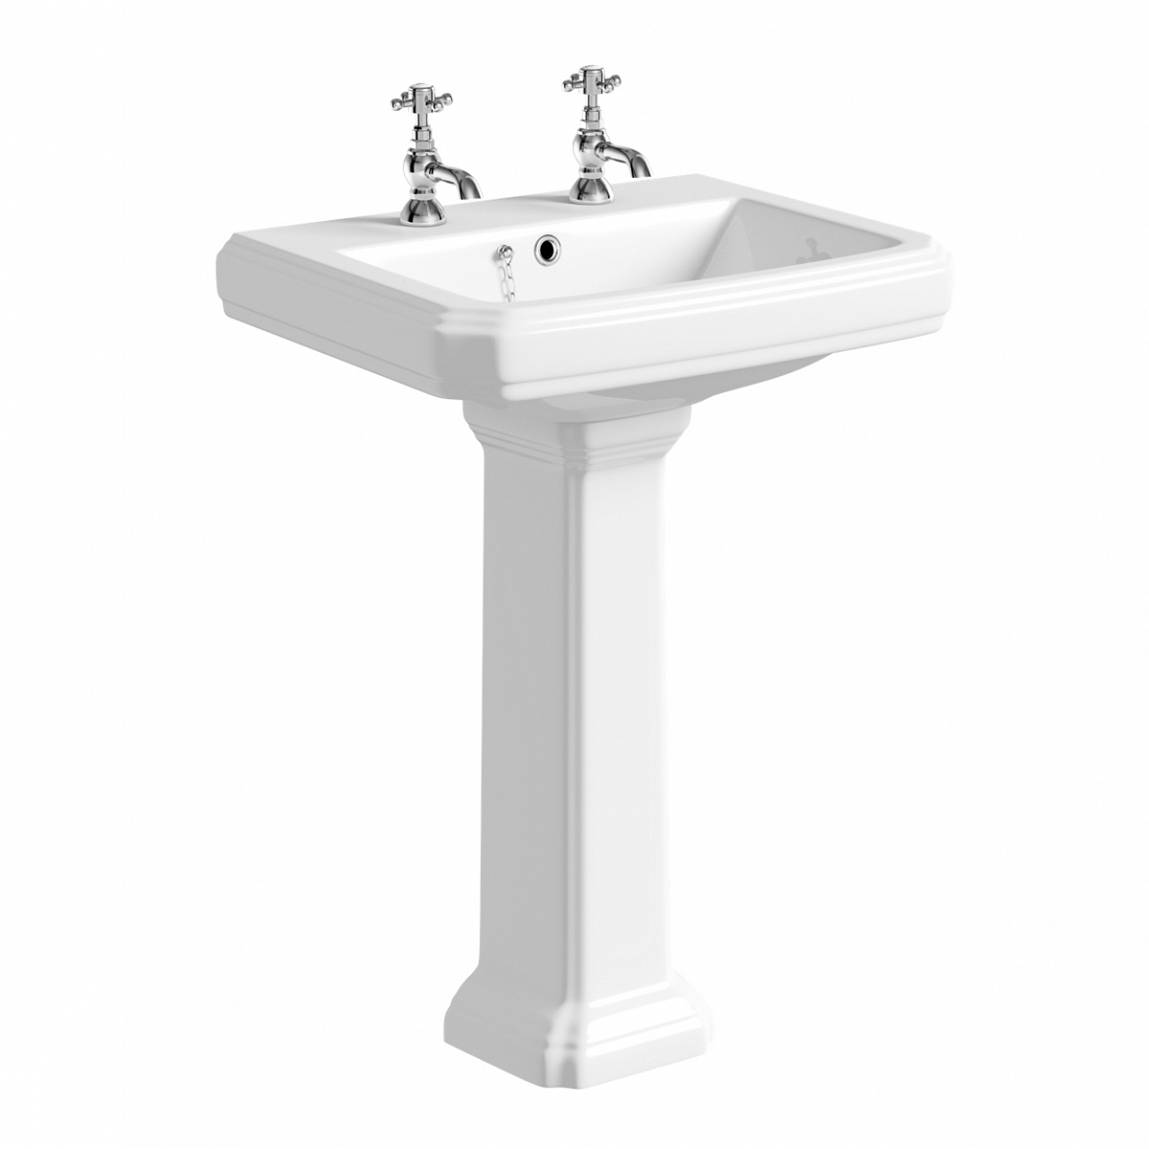 Image of Cavendish 600mm 2TH Basin and Pedestal